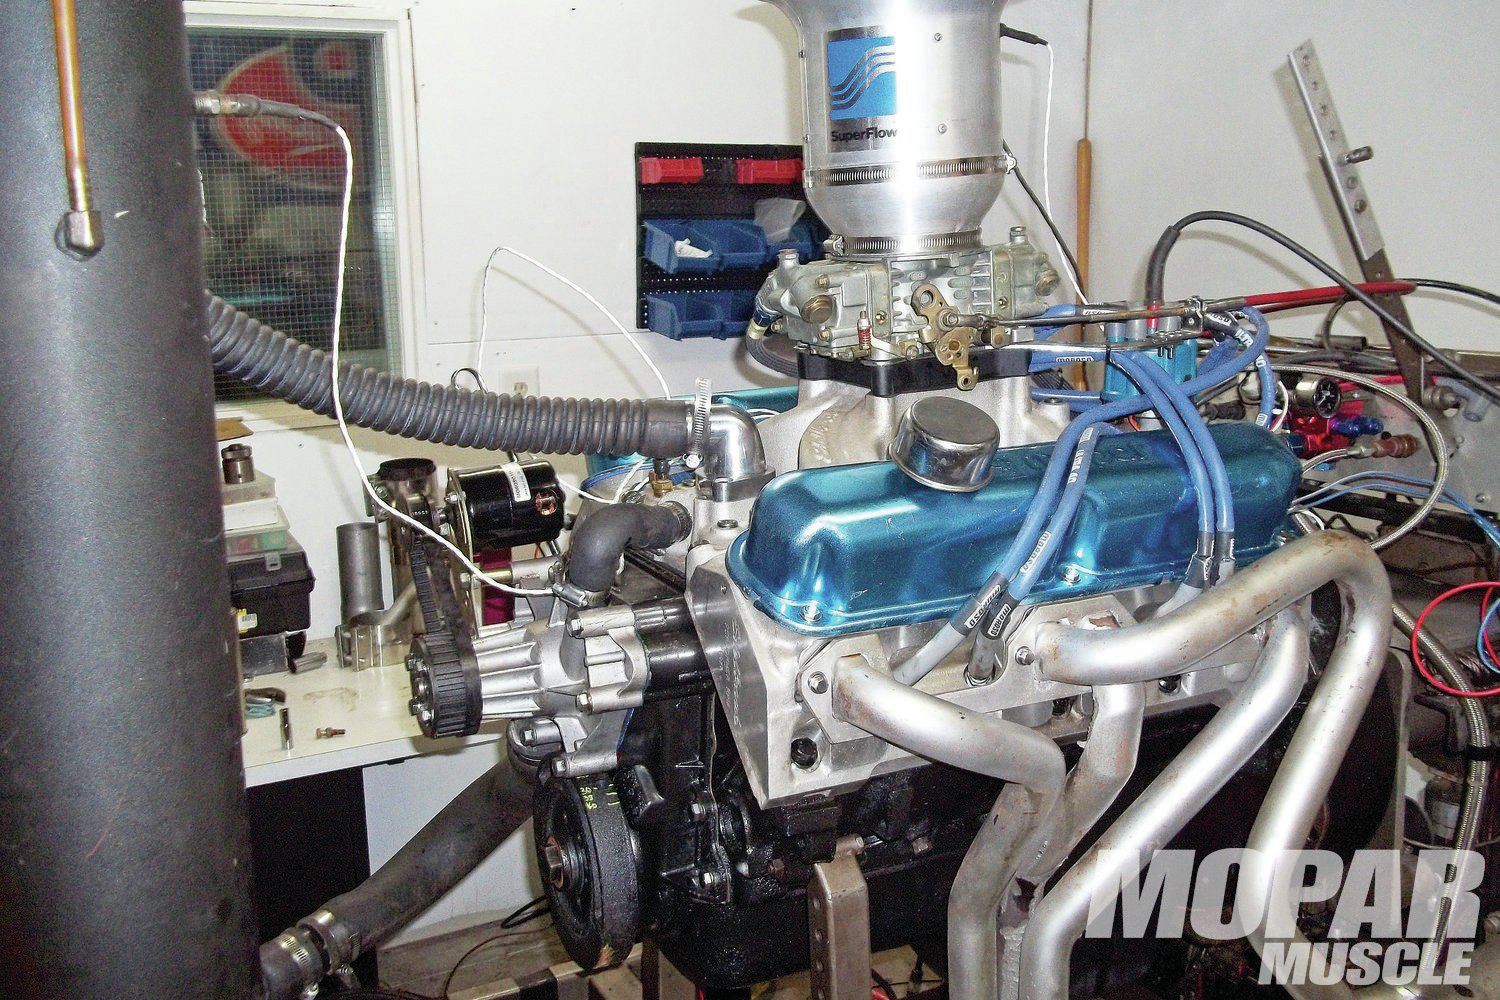 3. After a thorough break-in procedure on the Superflow dyno, we put the 360 through jetting and timing loops to get the tune correct. With 34 degrees of total timing being optimum, and the jetting in our 670 Holley needing only a slight increase in jets to be perfect with the local 87-Octane pump gas.